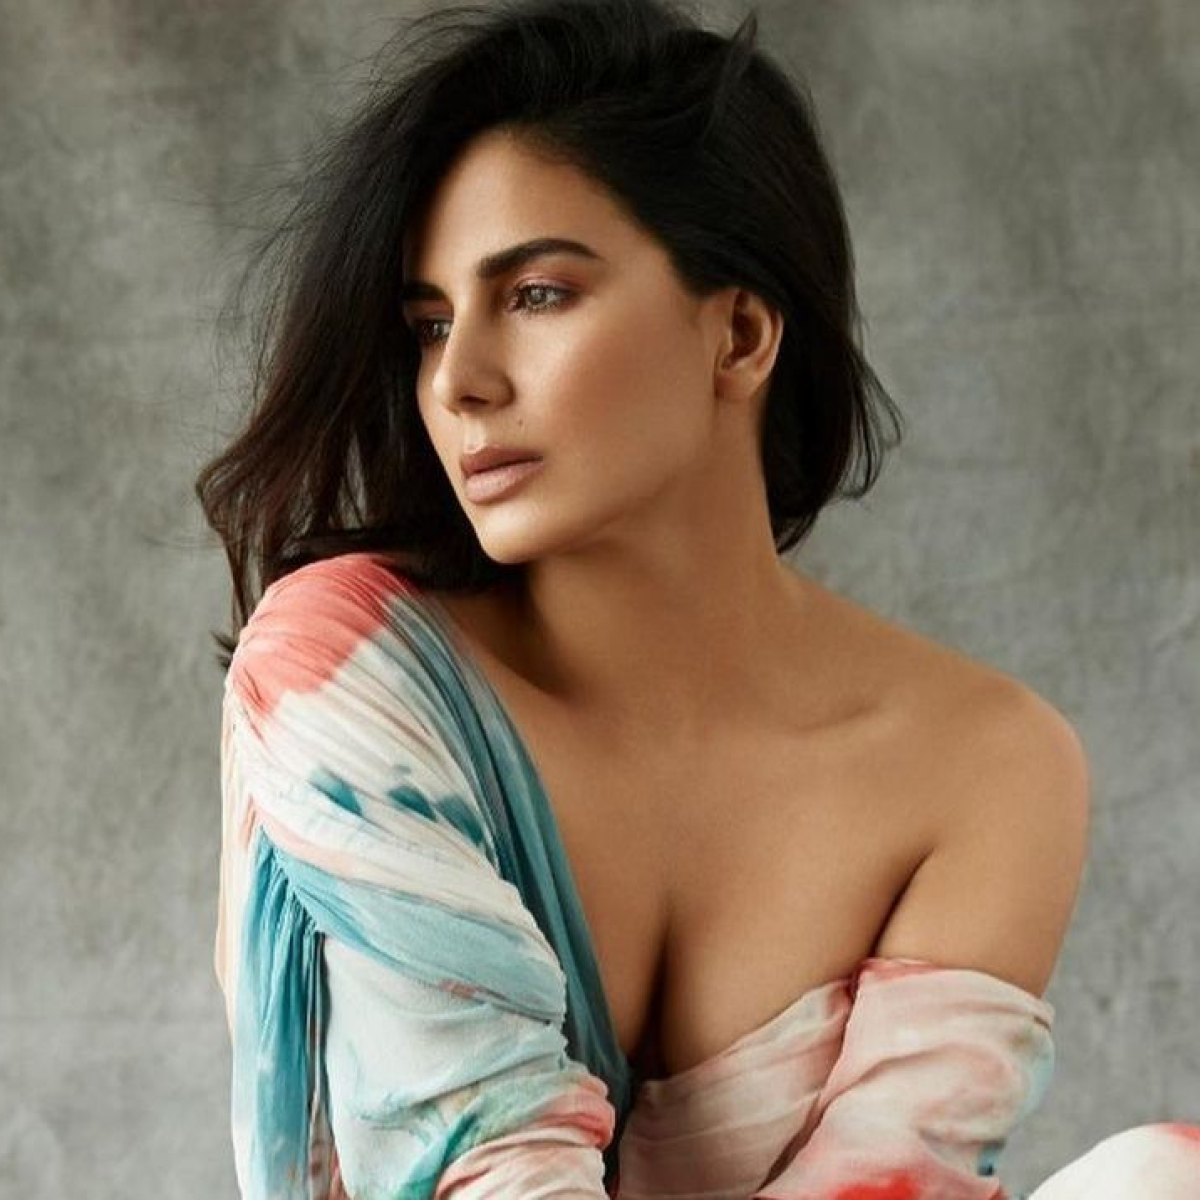 Kirti Kulhari announces separation from husband Saahil Sehgal after 5 years of marriage; says 'it's not easy'